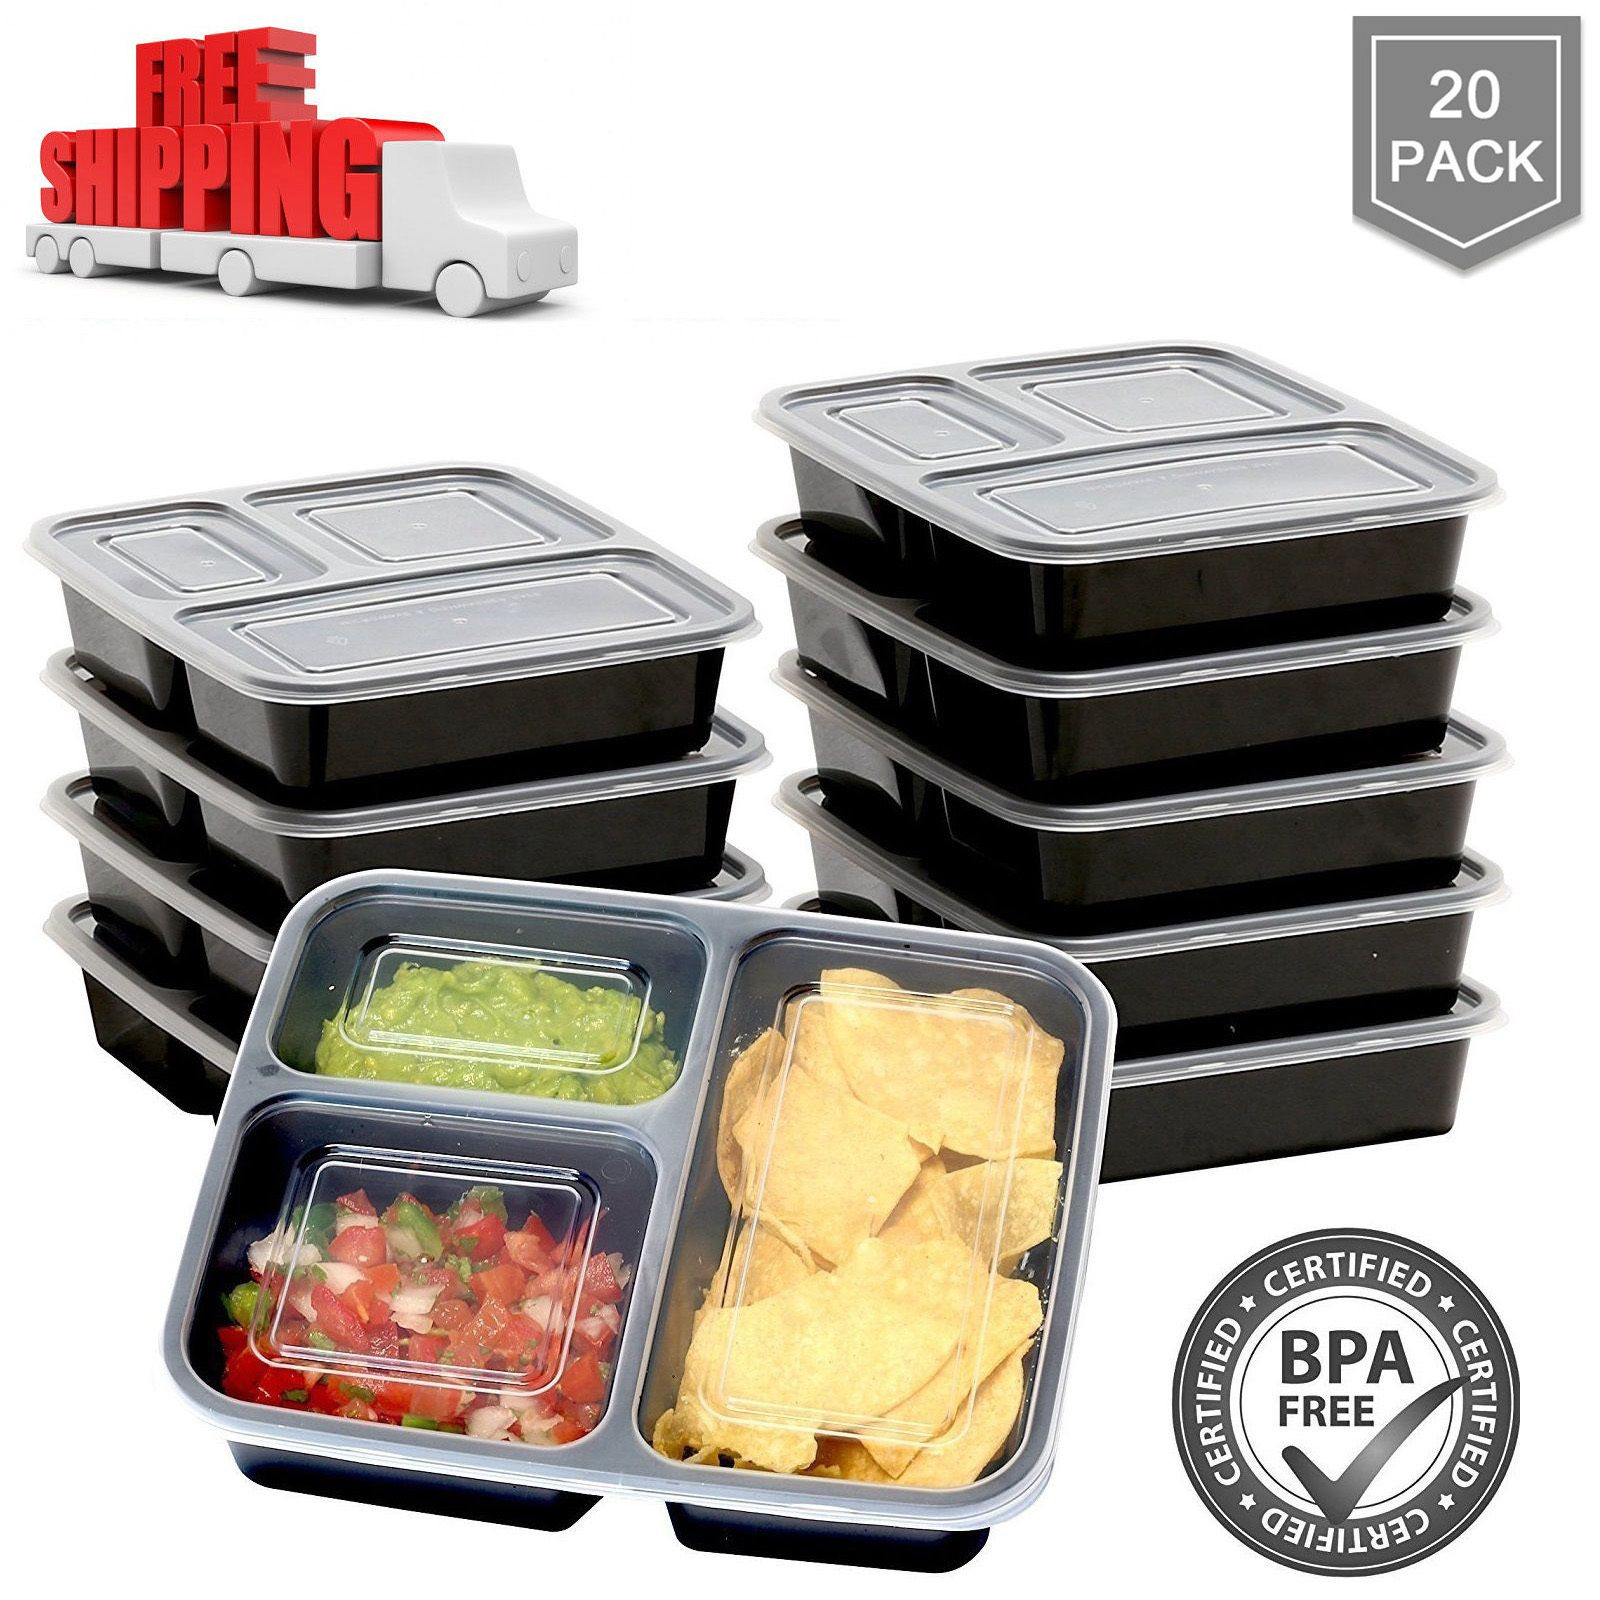 20 Meal Prep Containers Food Storage 3 Compartment Plastic Reusable Microwavable 1